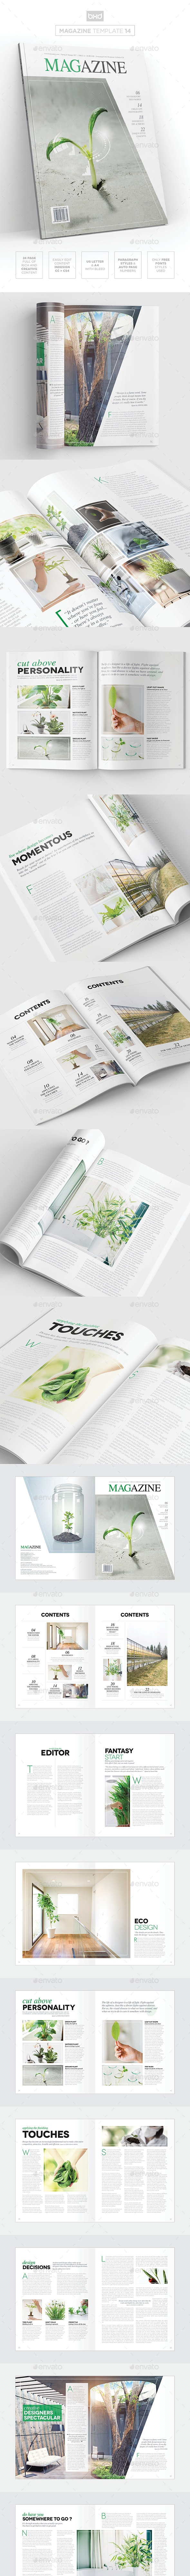 Magazine Template - InDesign 24 Page Layout V14 - Magazines Print Templates